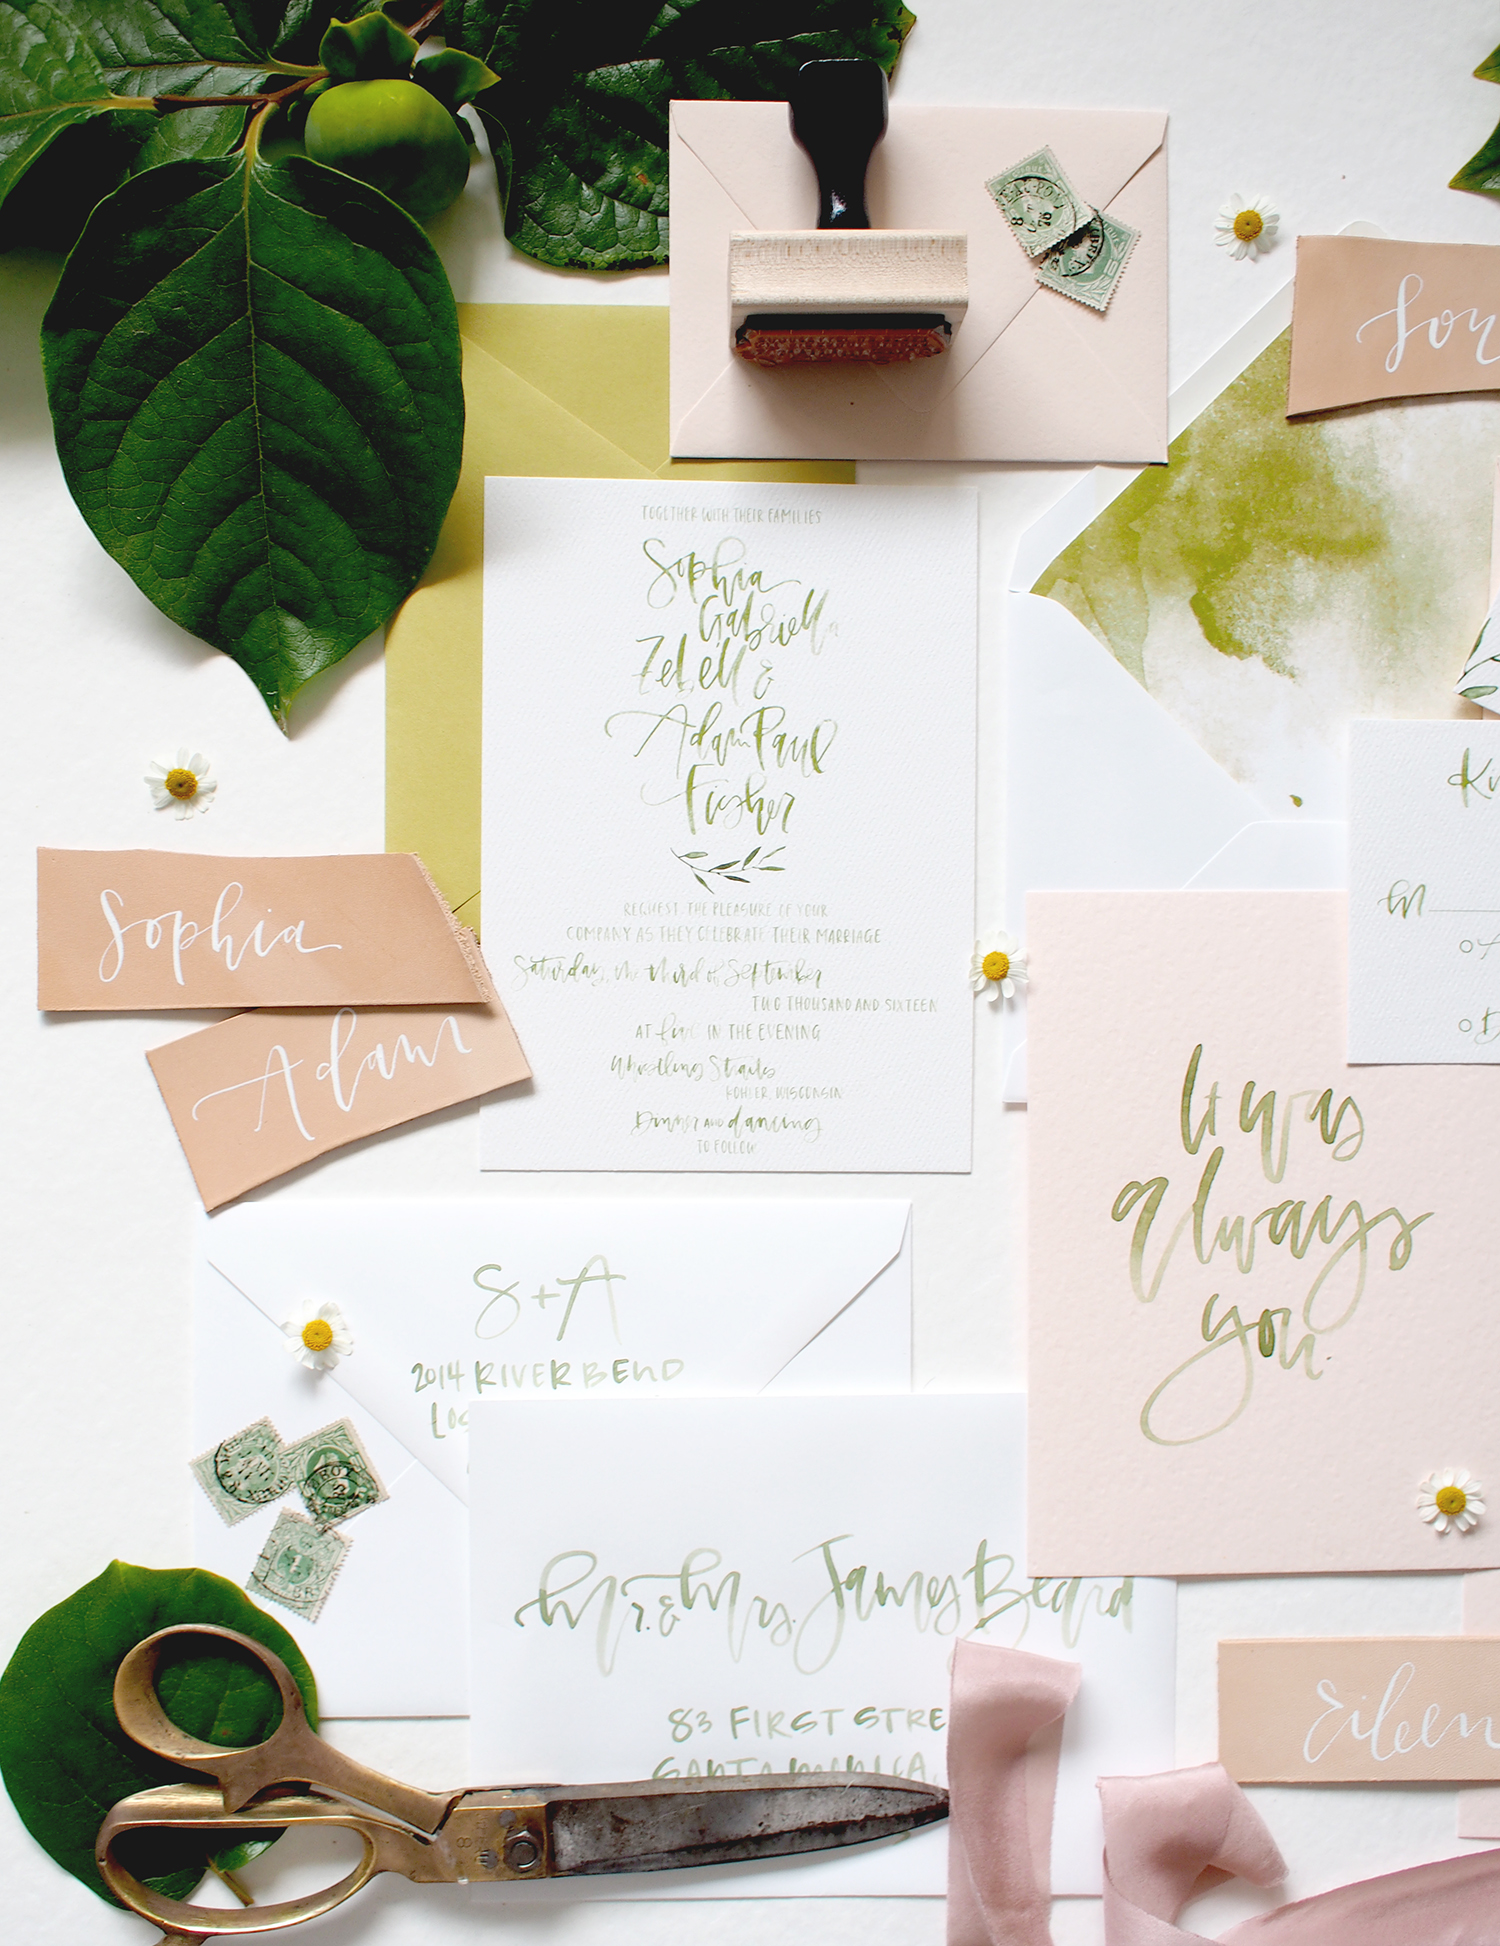 wedding envelope addressing by hand | A Fabulous Fete